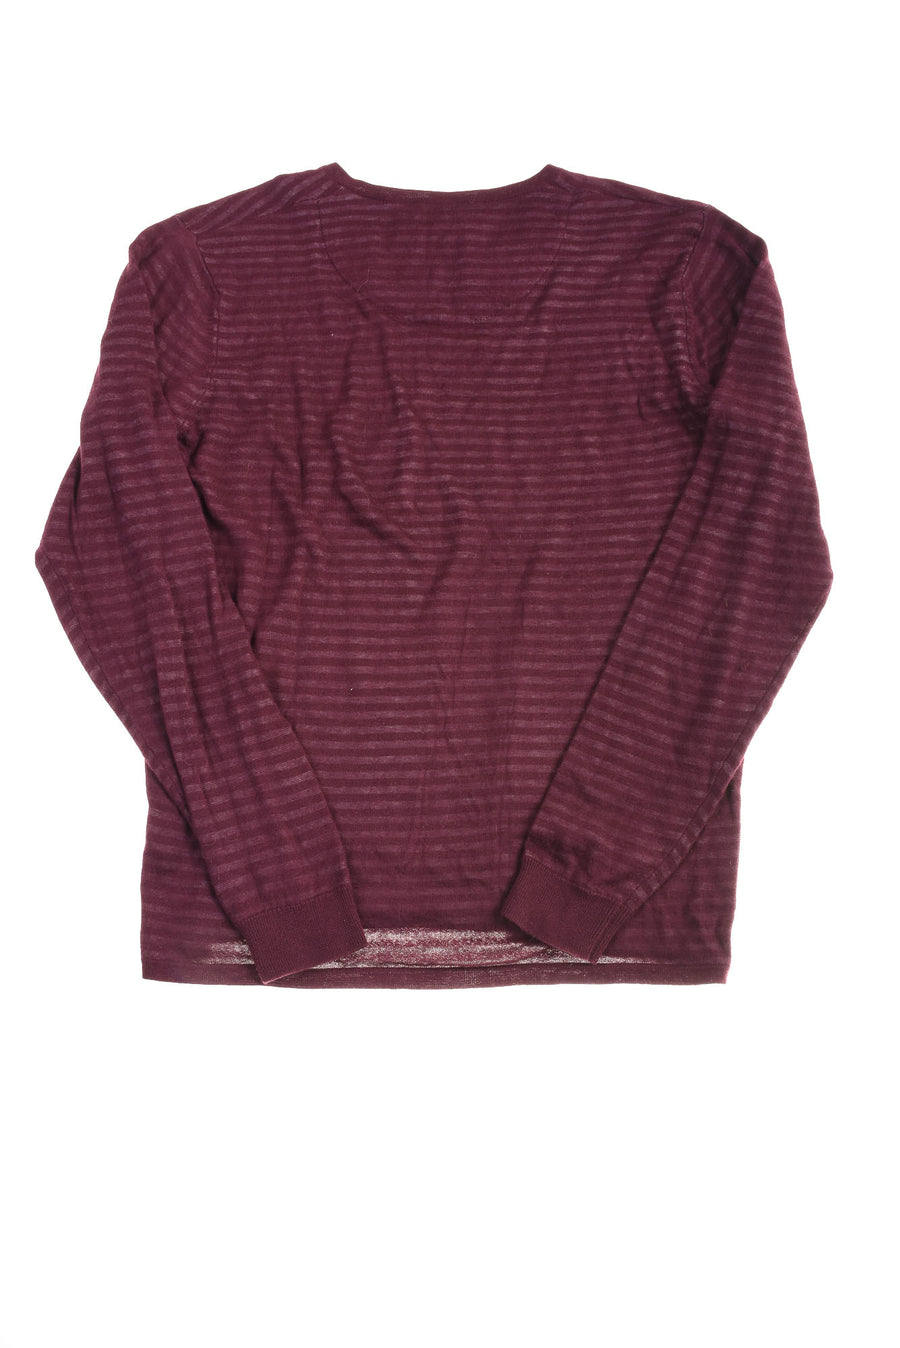 USED Calibrate Men's Sweater Large Burgandy